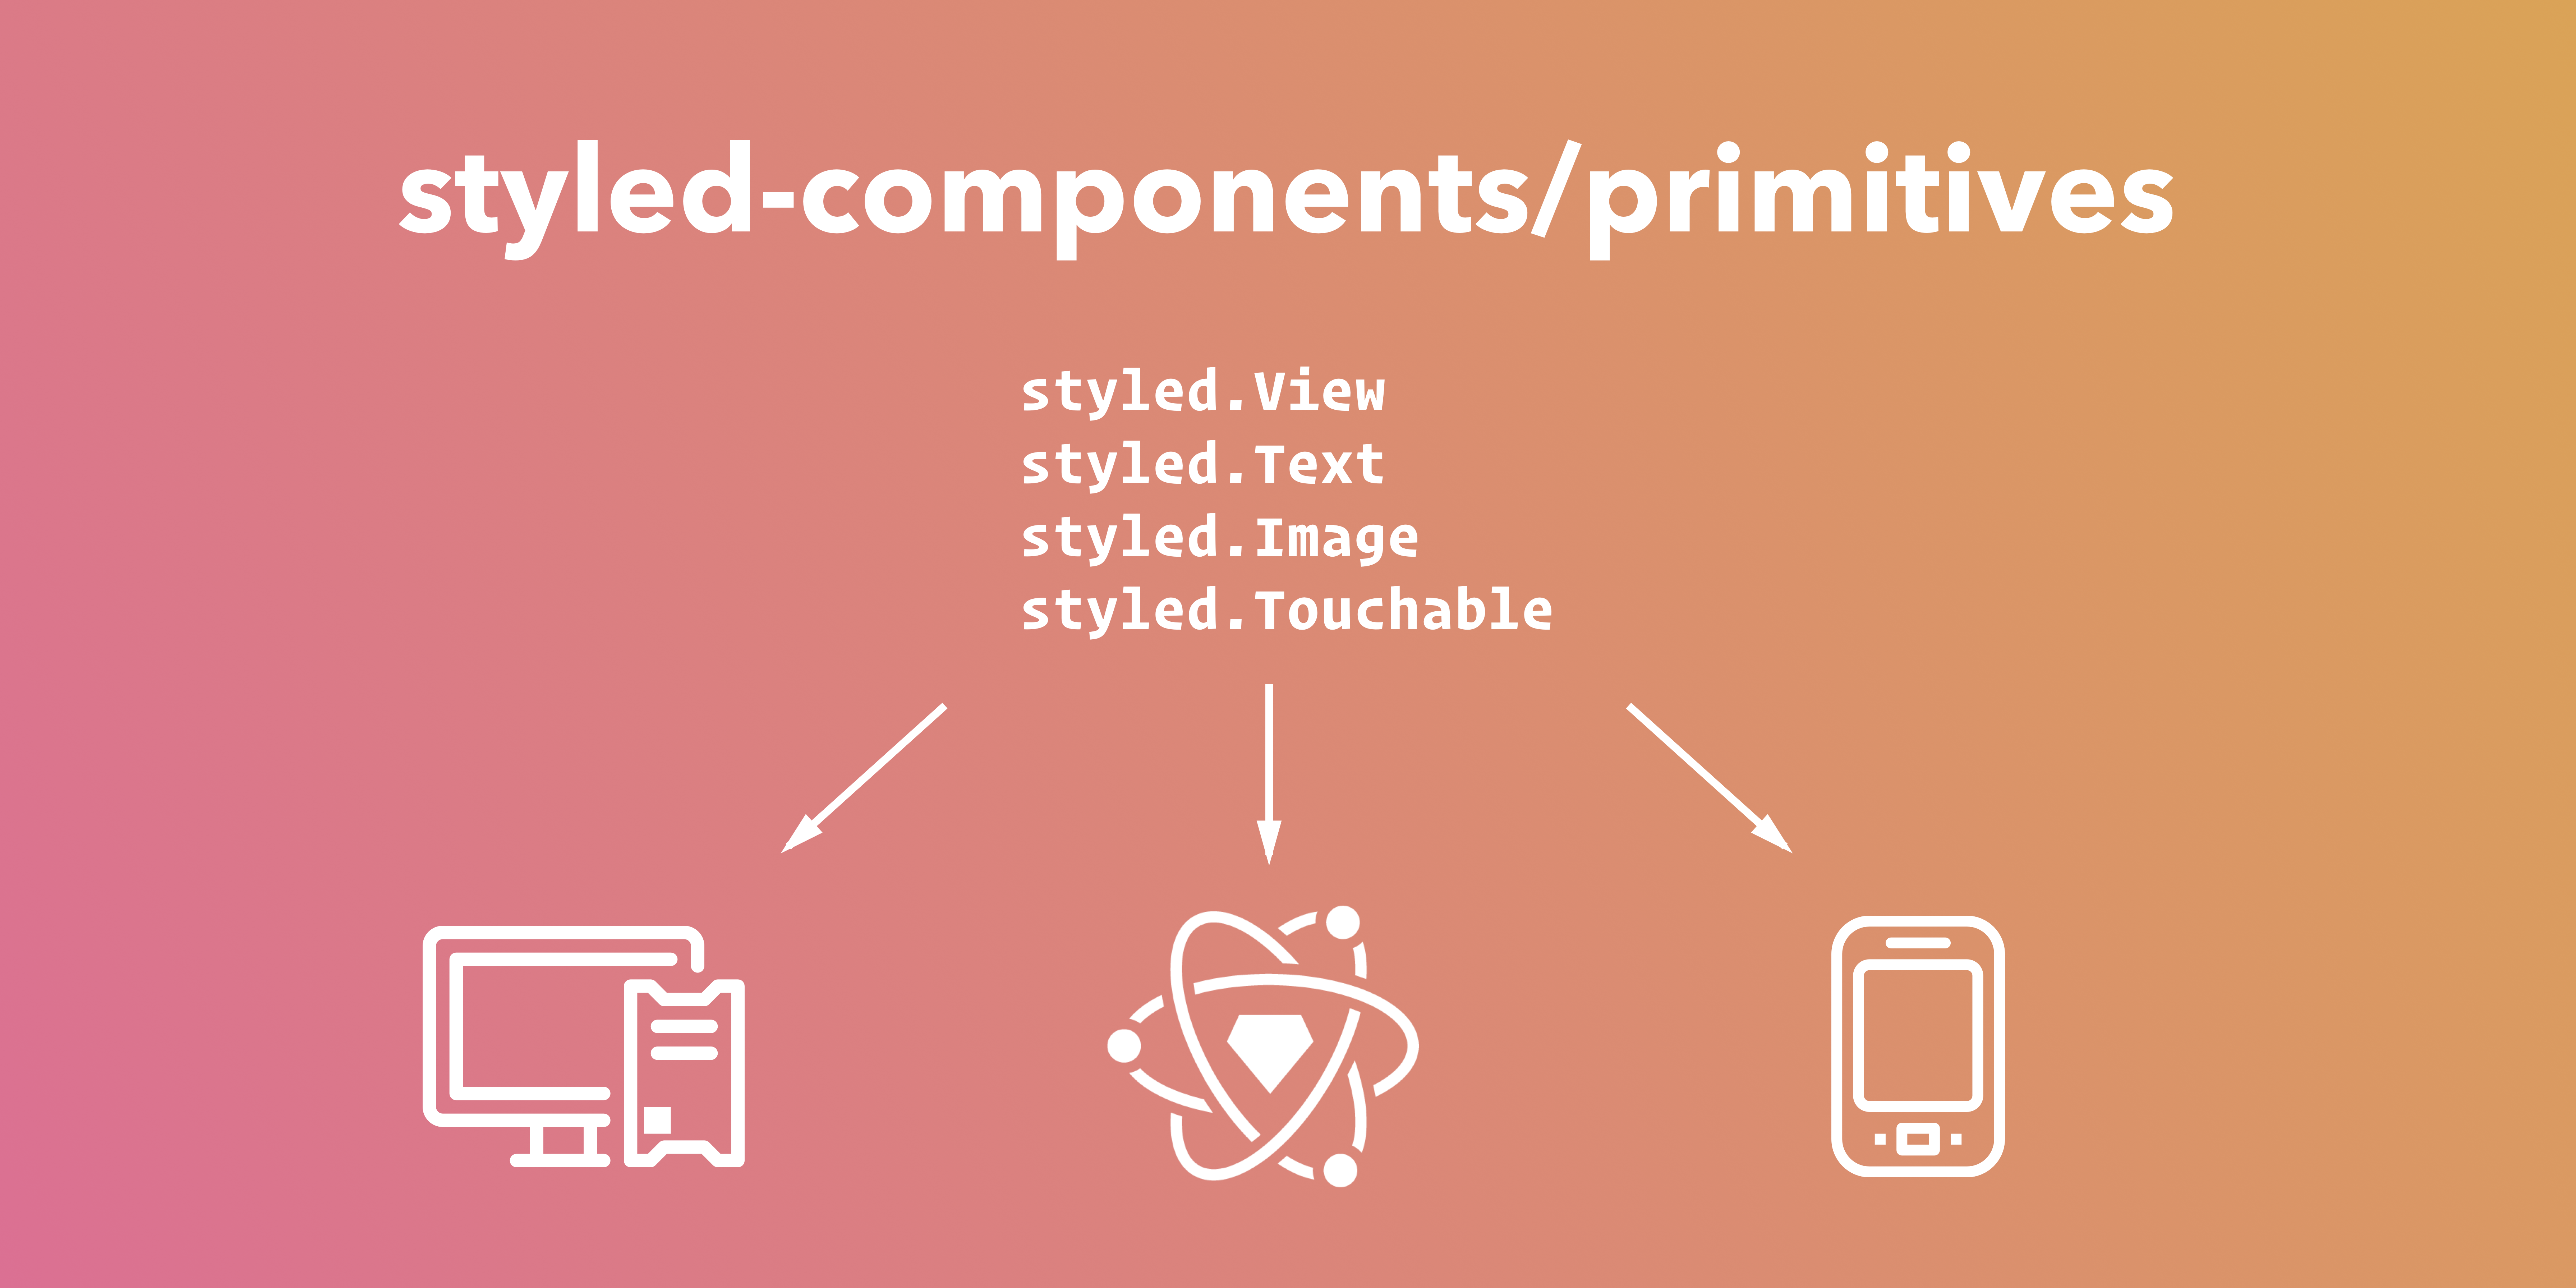 styled-primitives